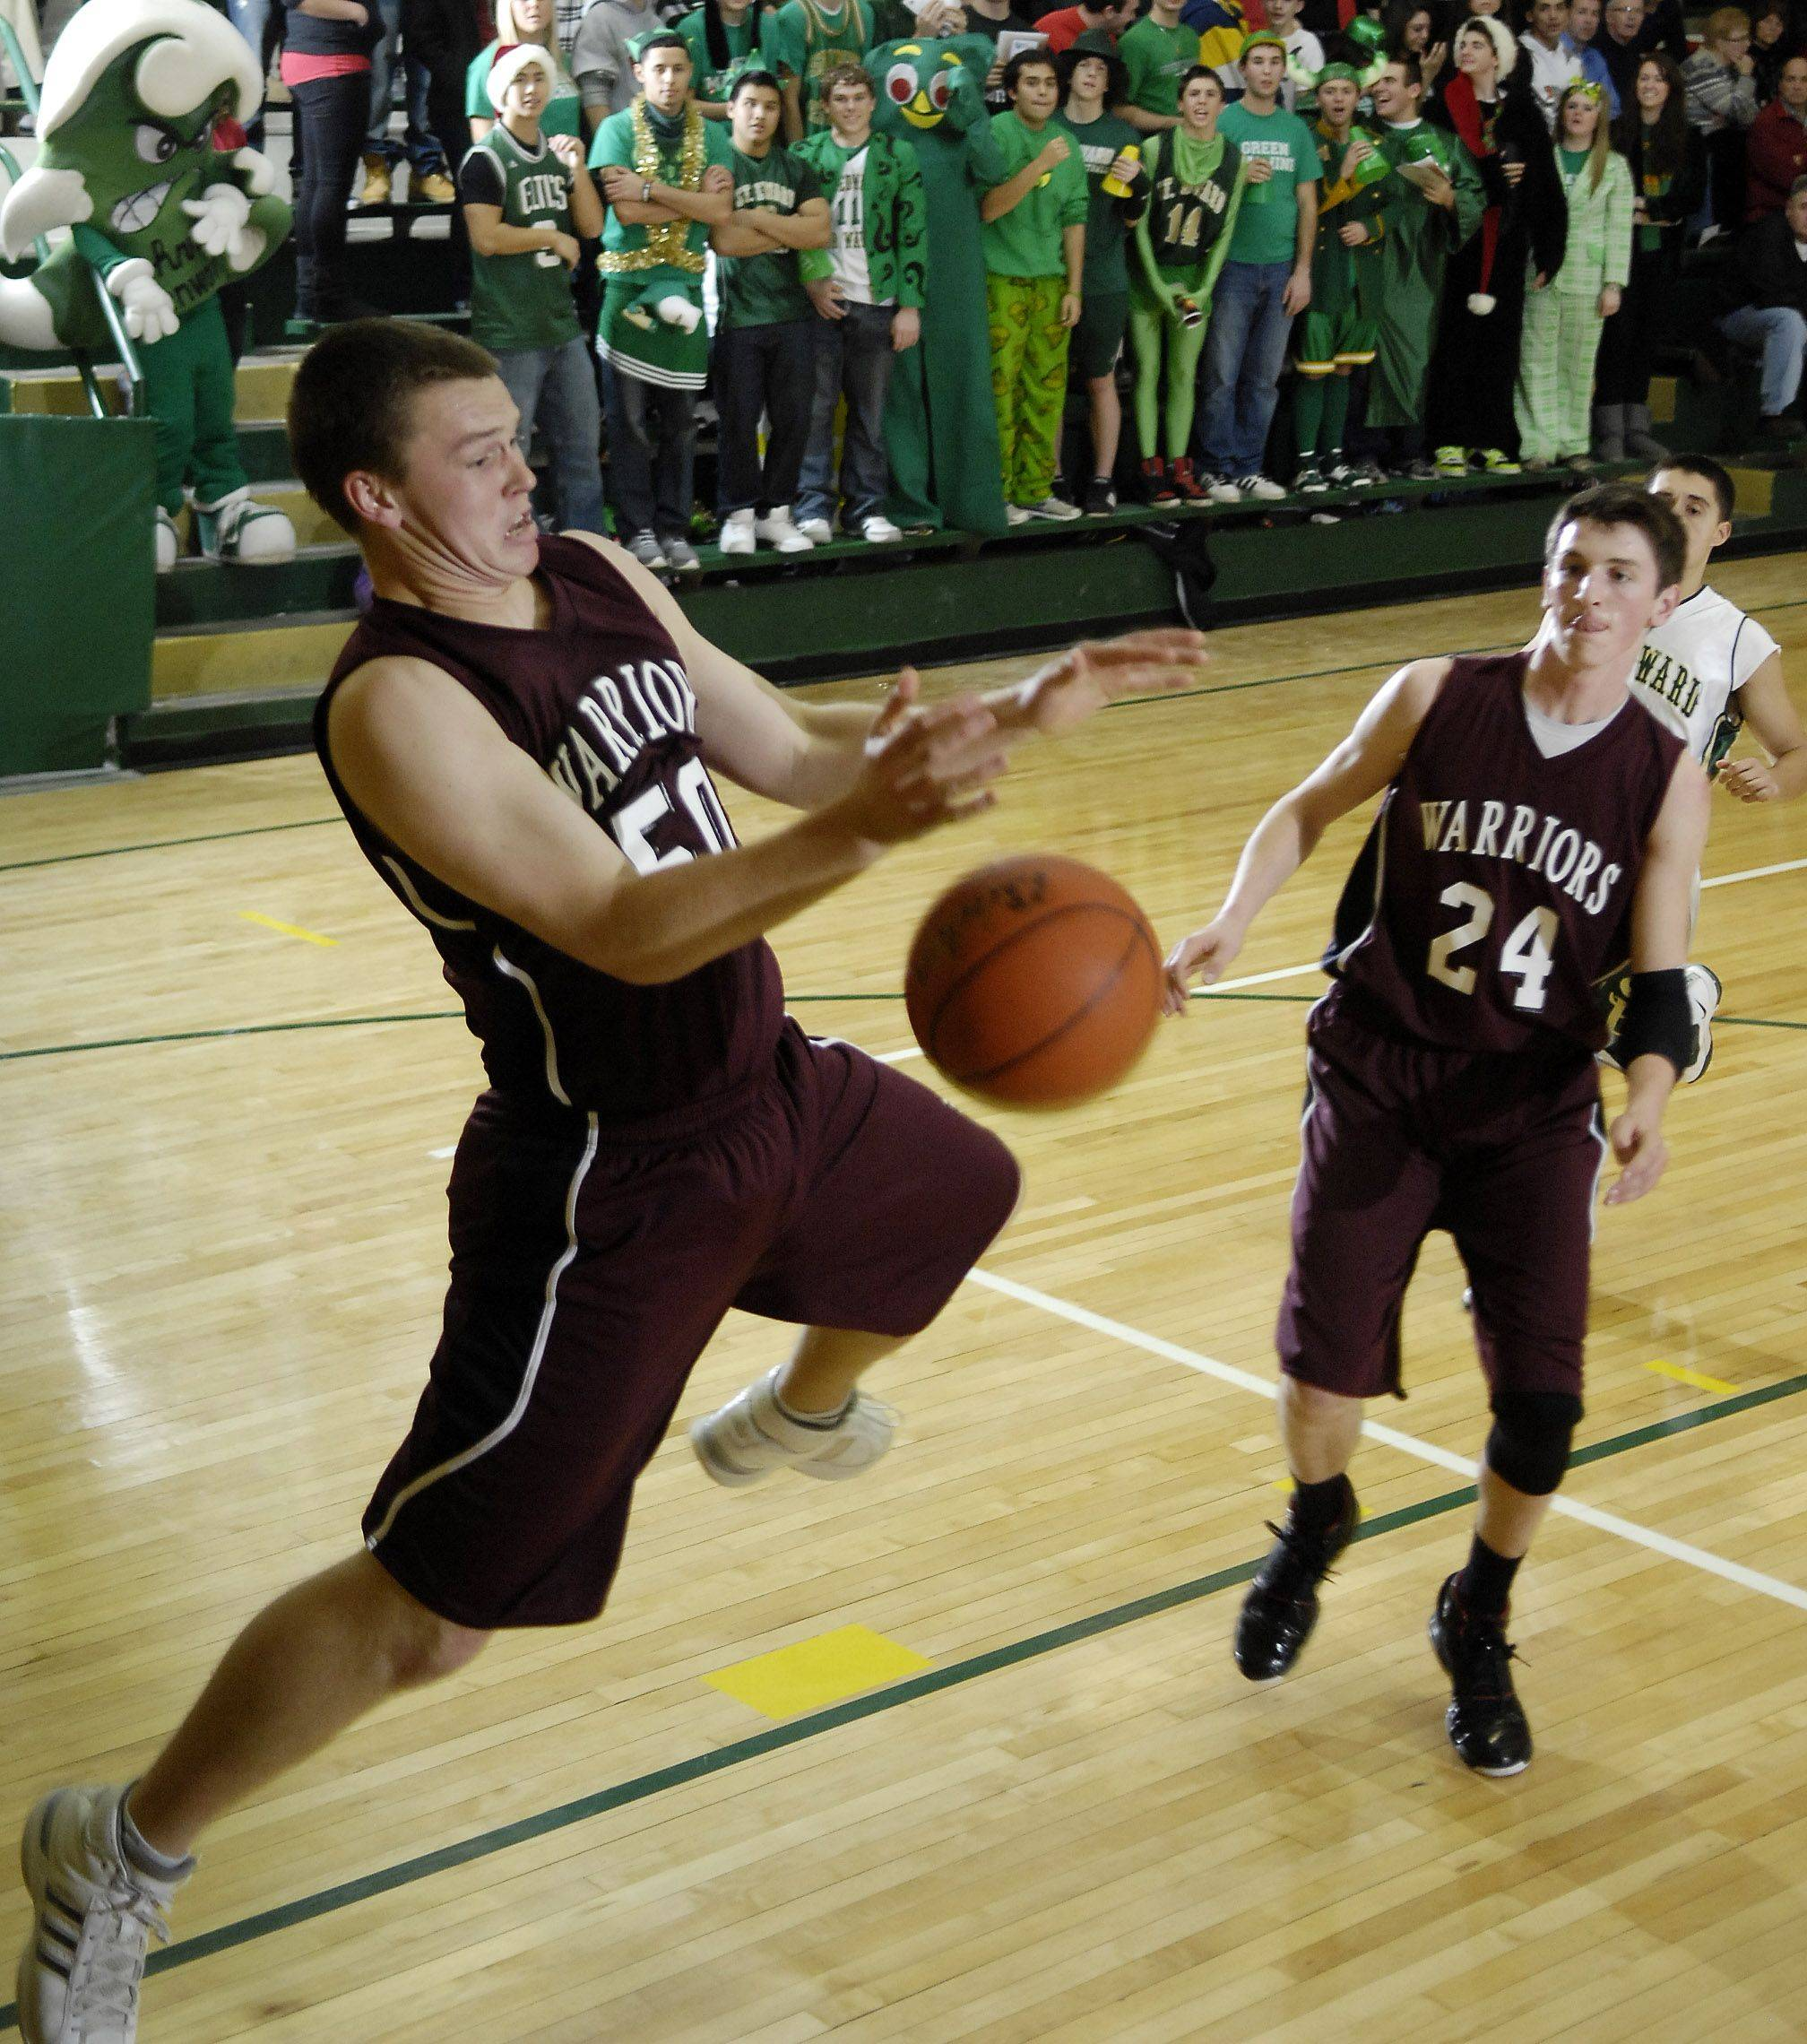 Wheaton Academy's Tate Fritz grabs a rebound during Friday's game at St. Edward High School in Elgin.